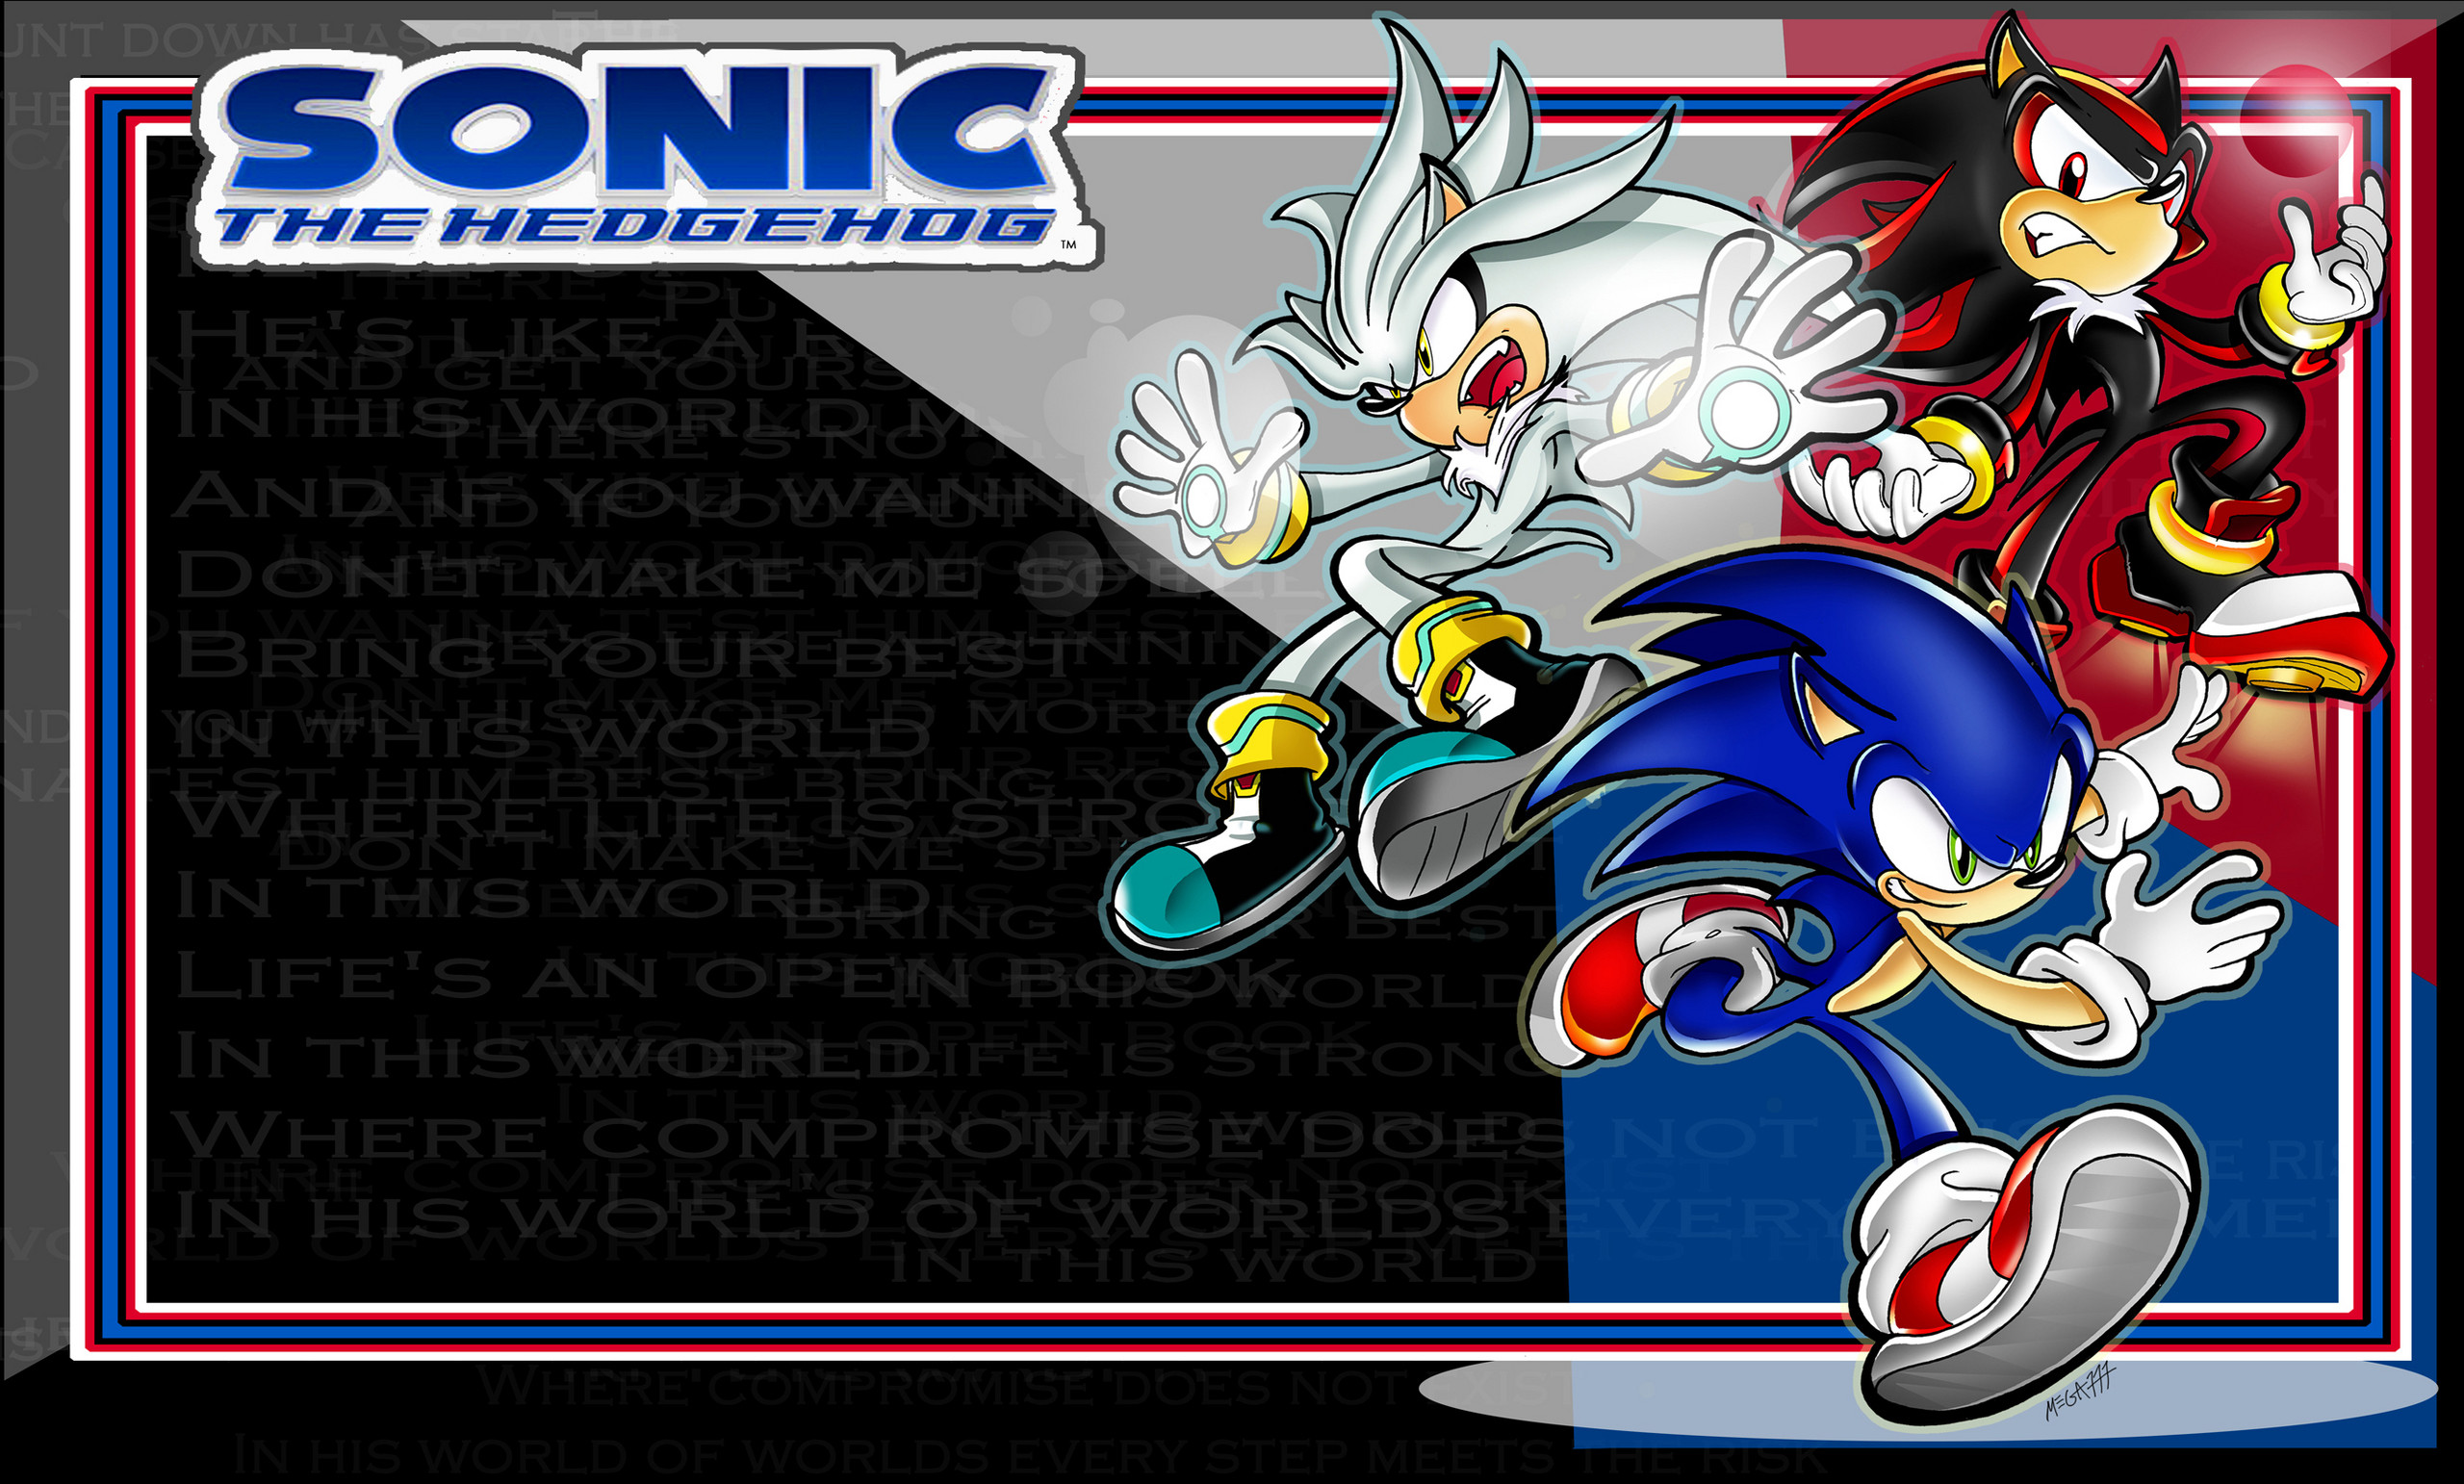 2560x1542 hedgehog boyfriends images sonic silver shadow HD wallpaper and background  photos